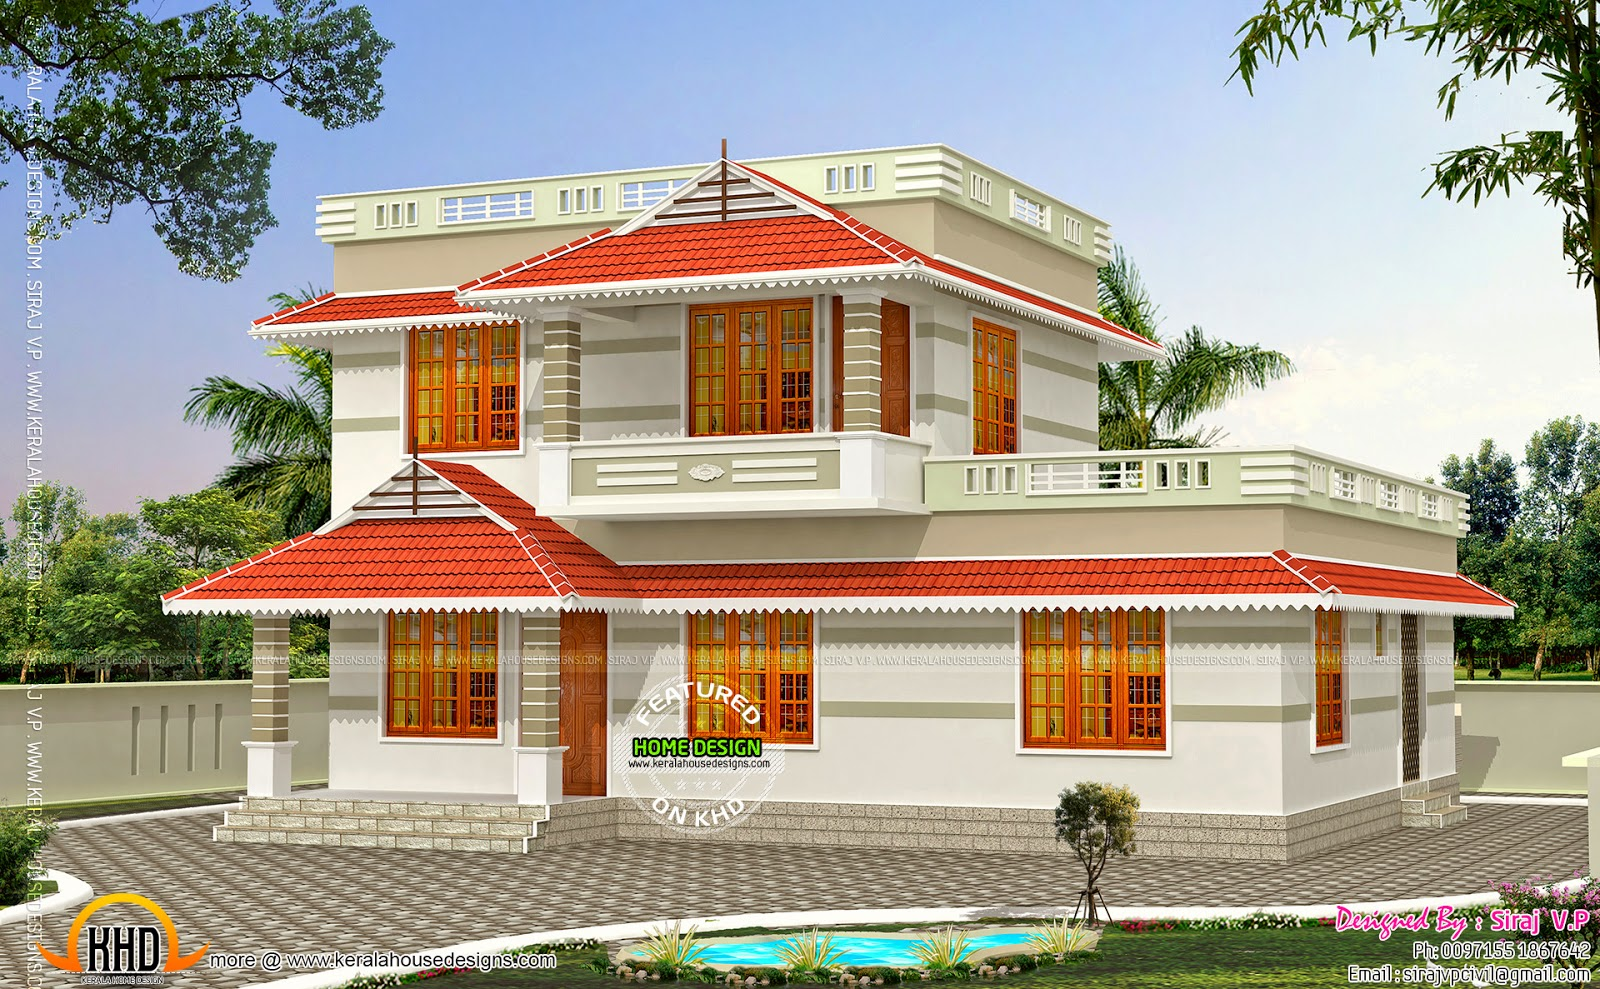 Home Design Kerala With Cost 30 Lakhs Cost Estimated Traditional